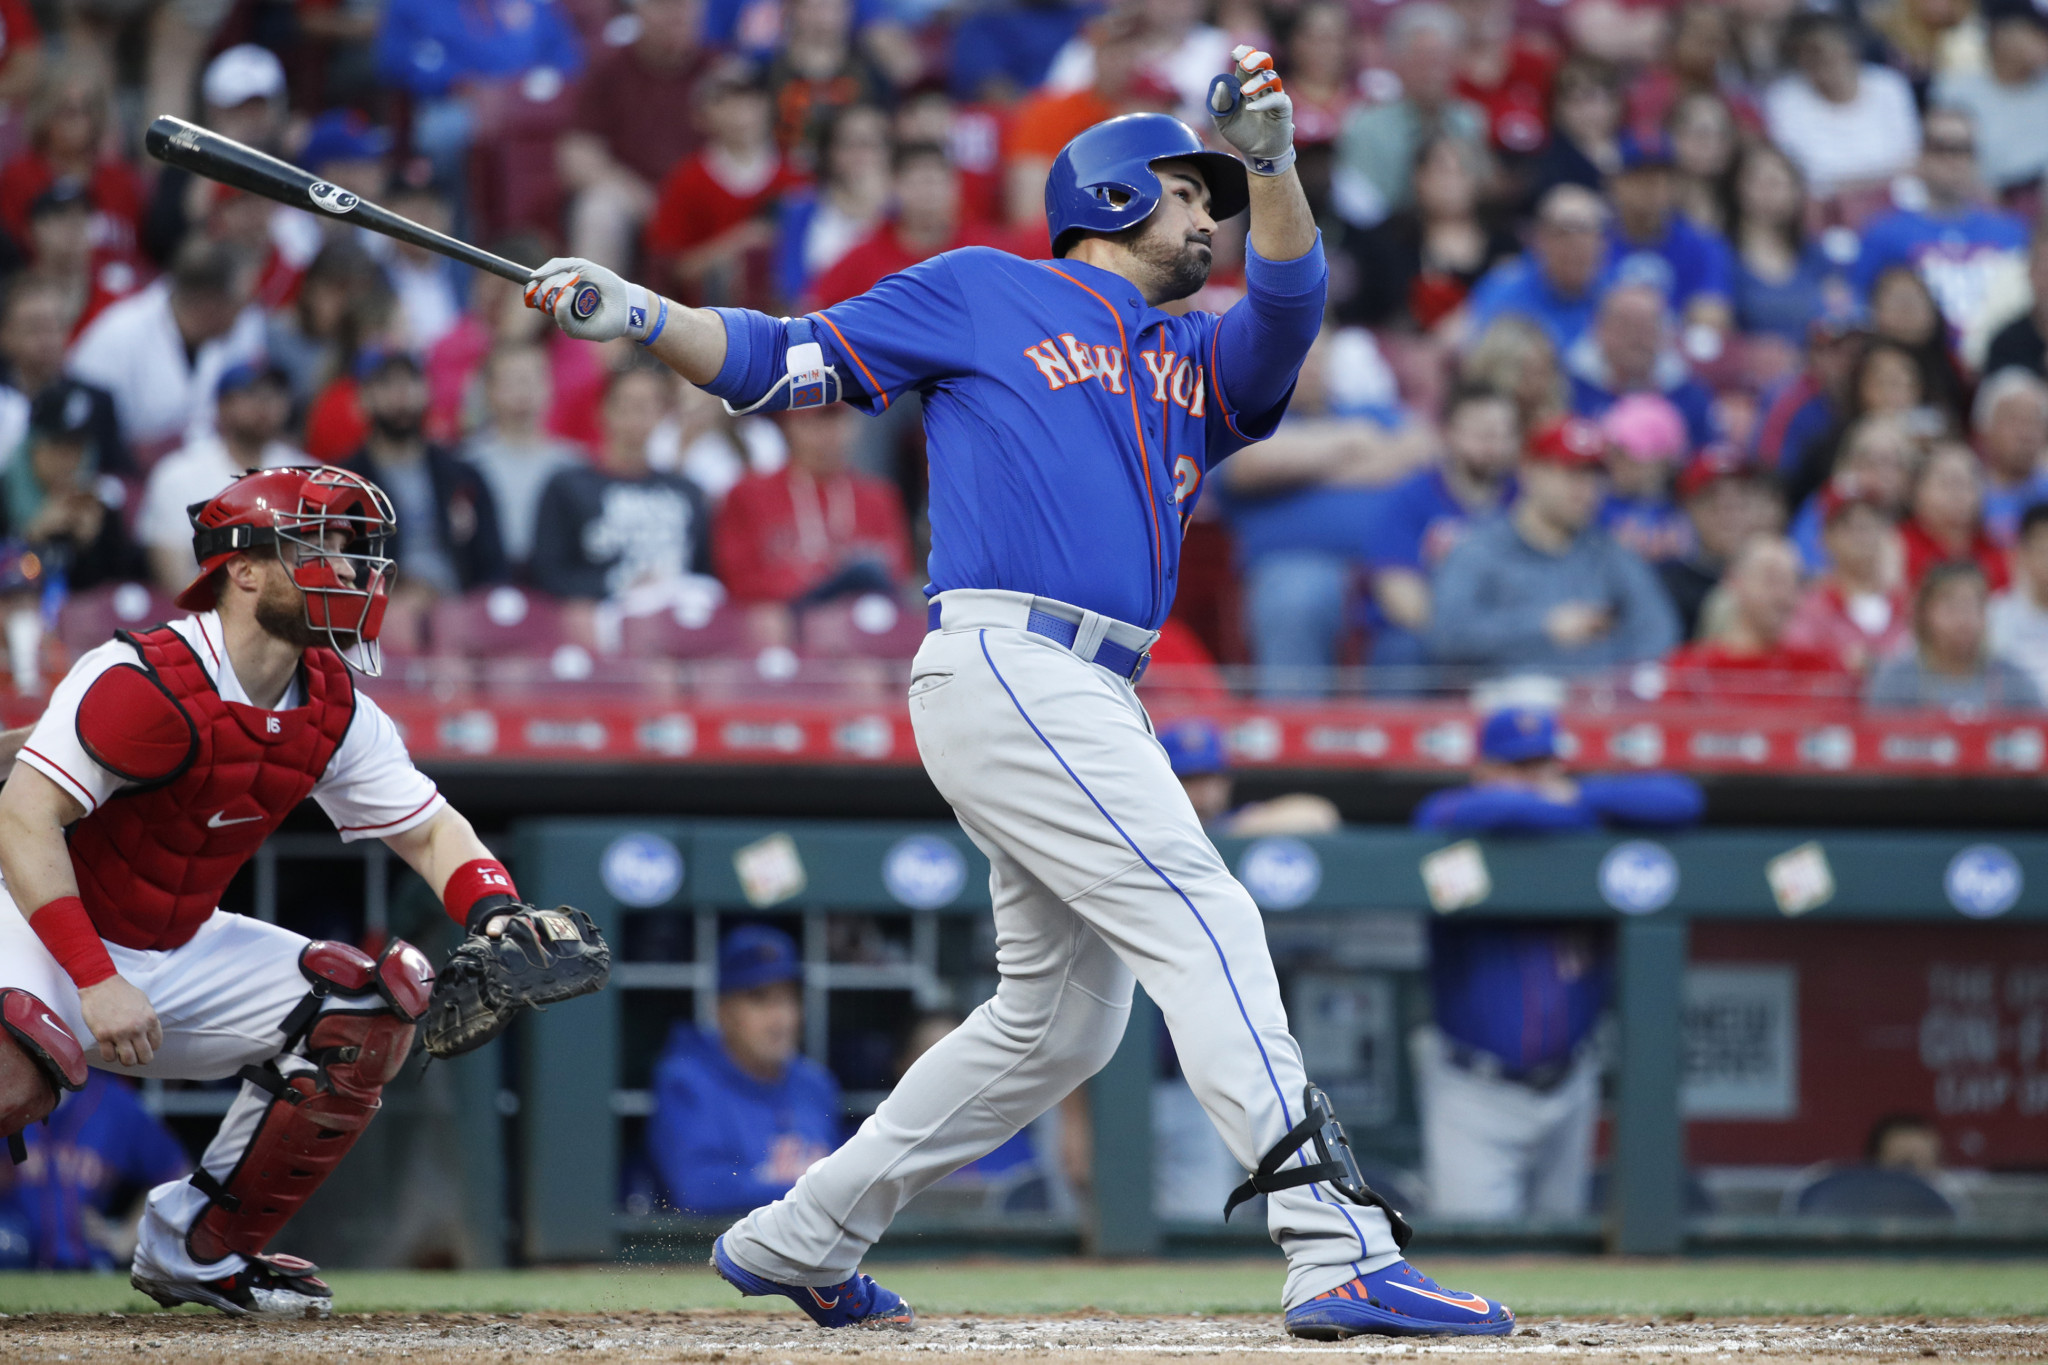 Adrian Gonzalez is eyeing a place in Mexico's team for next year's Olympic Games in Tokyo ©Getty Images